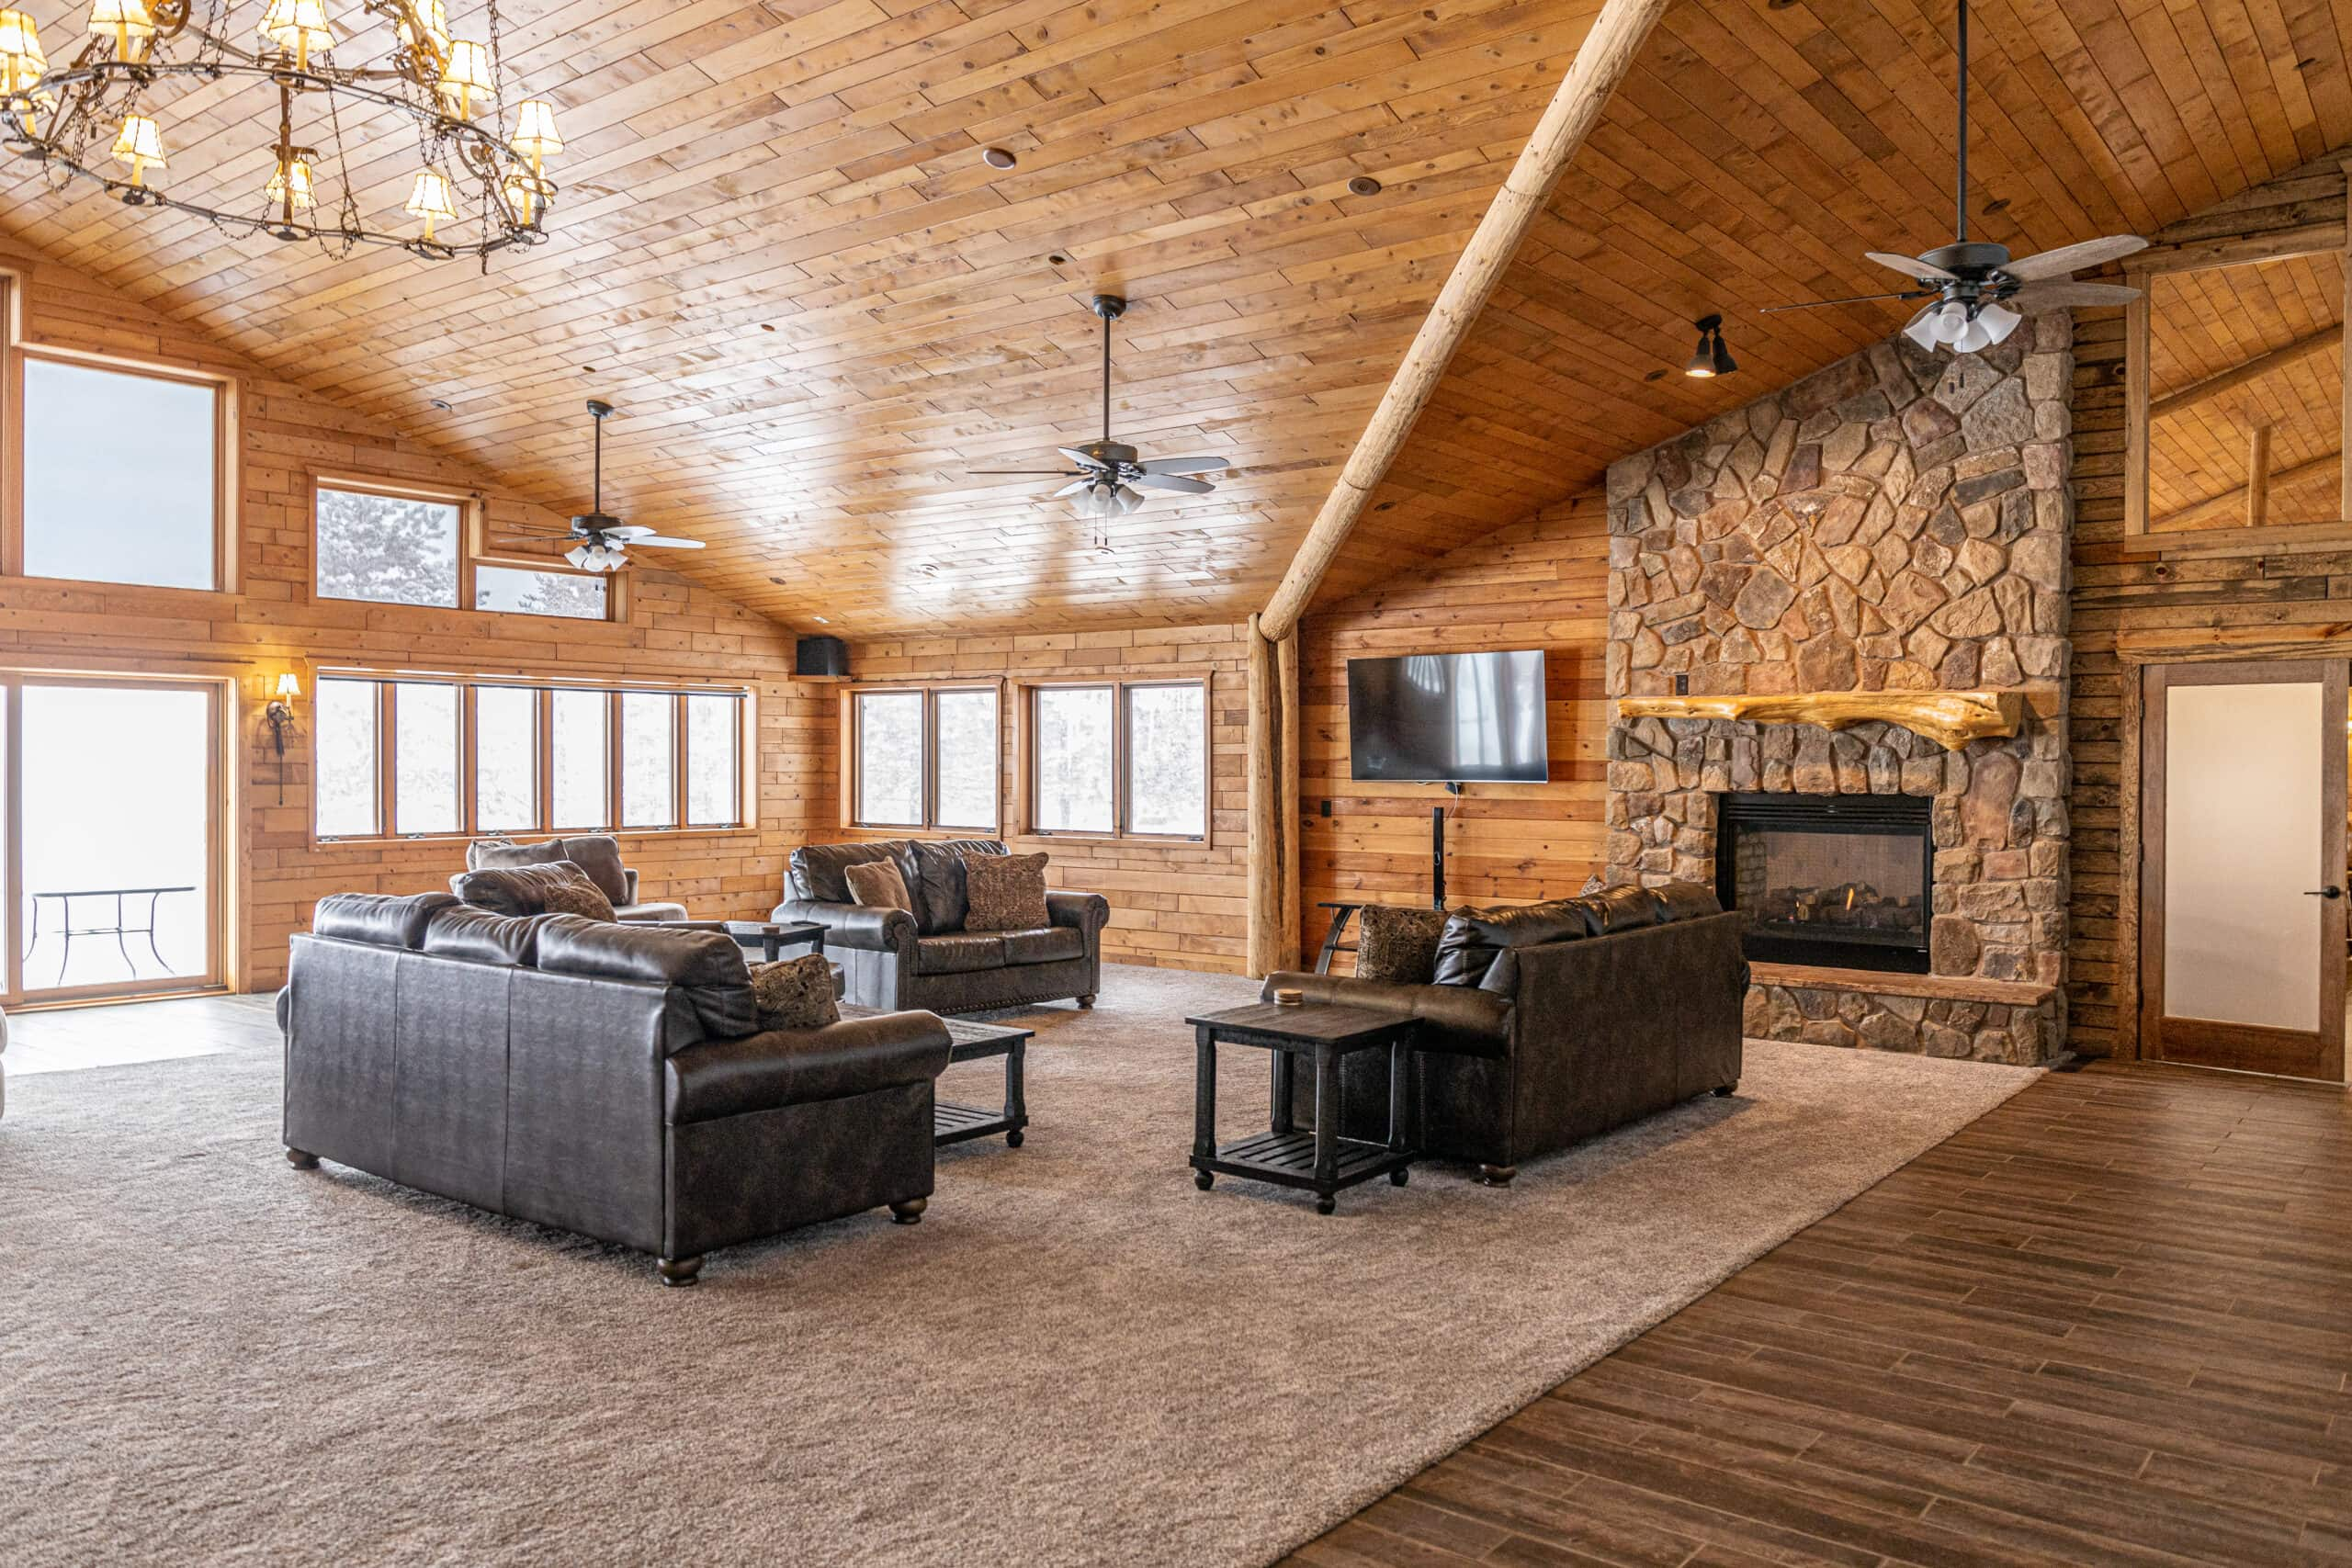 The great room at Holiday House lodge. Bright winter sunlight and a lake view are visible through banks of windows. Rustic wood paneling and warm lighting give the room a homey feel. To the right is a massive stone fireplace with a mantle made from a varnished log. At center is a carpeted conversation area with modern leather furniture, Rustic style black end tables and coffee tables, and 3 ceiling fans for perfect temperature control.